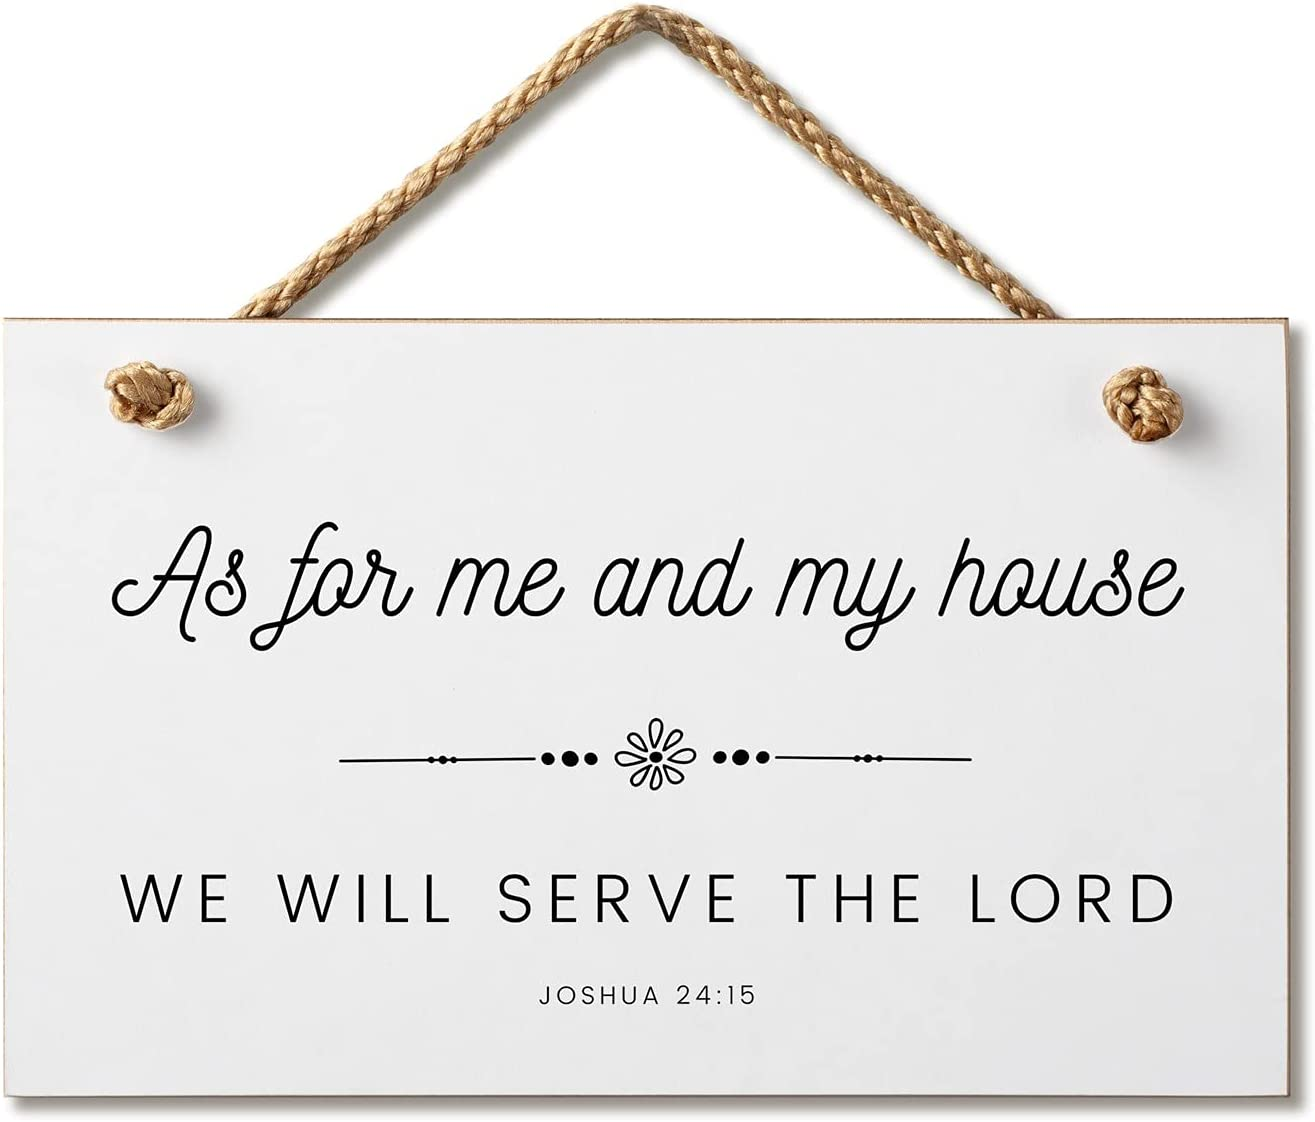 Marvin Gardens Designs Farmhouse Style Bible Verse Wall Decor Wood Sign 9.5 x 5.5 Inch Wood Made in The USA (As for Me and My House) (White), 9.5 x 5.5)…